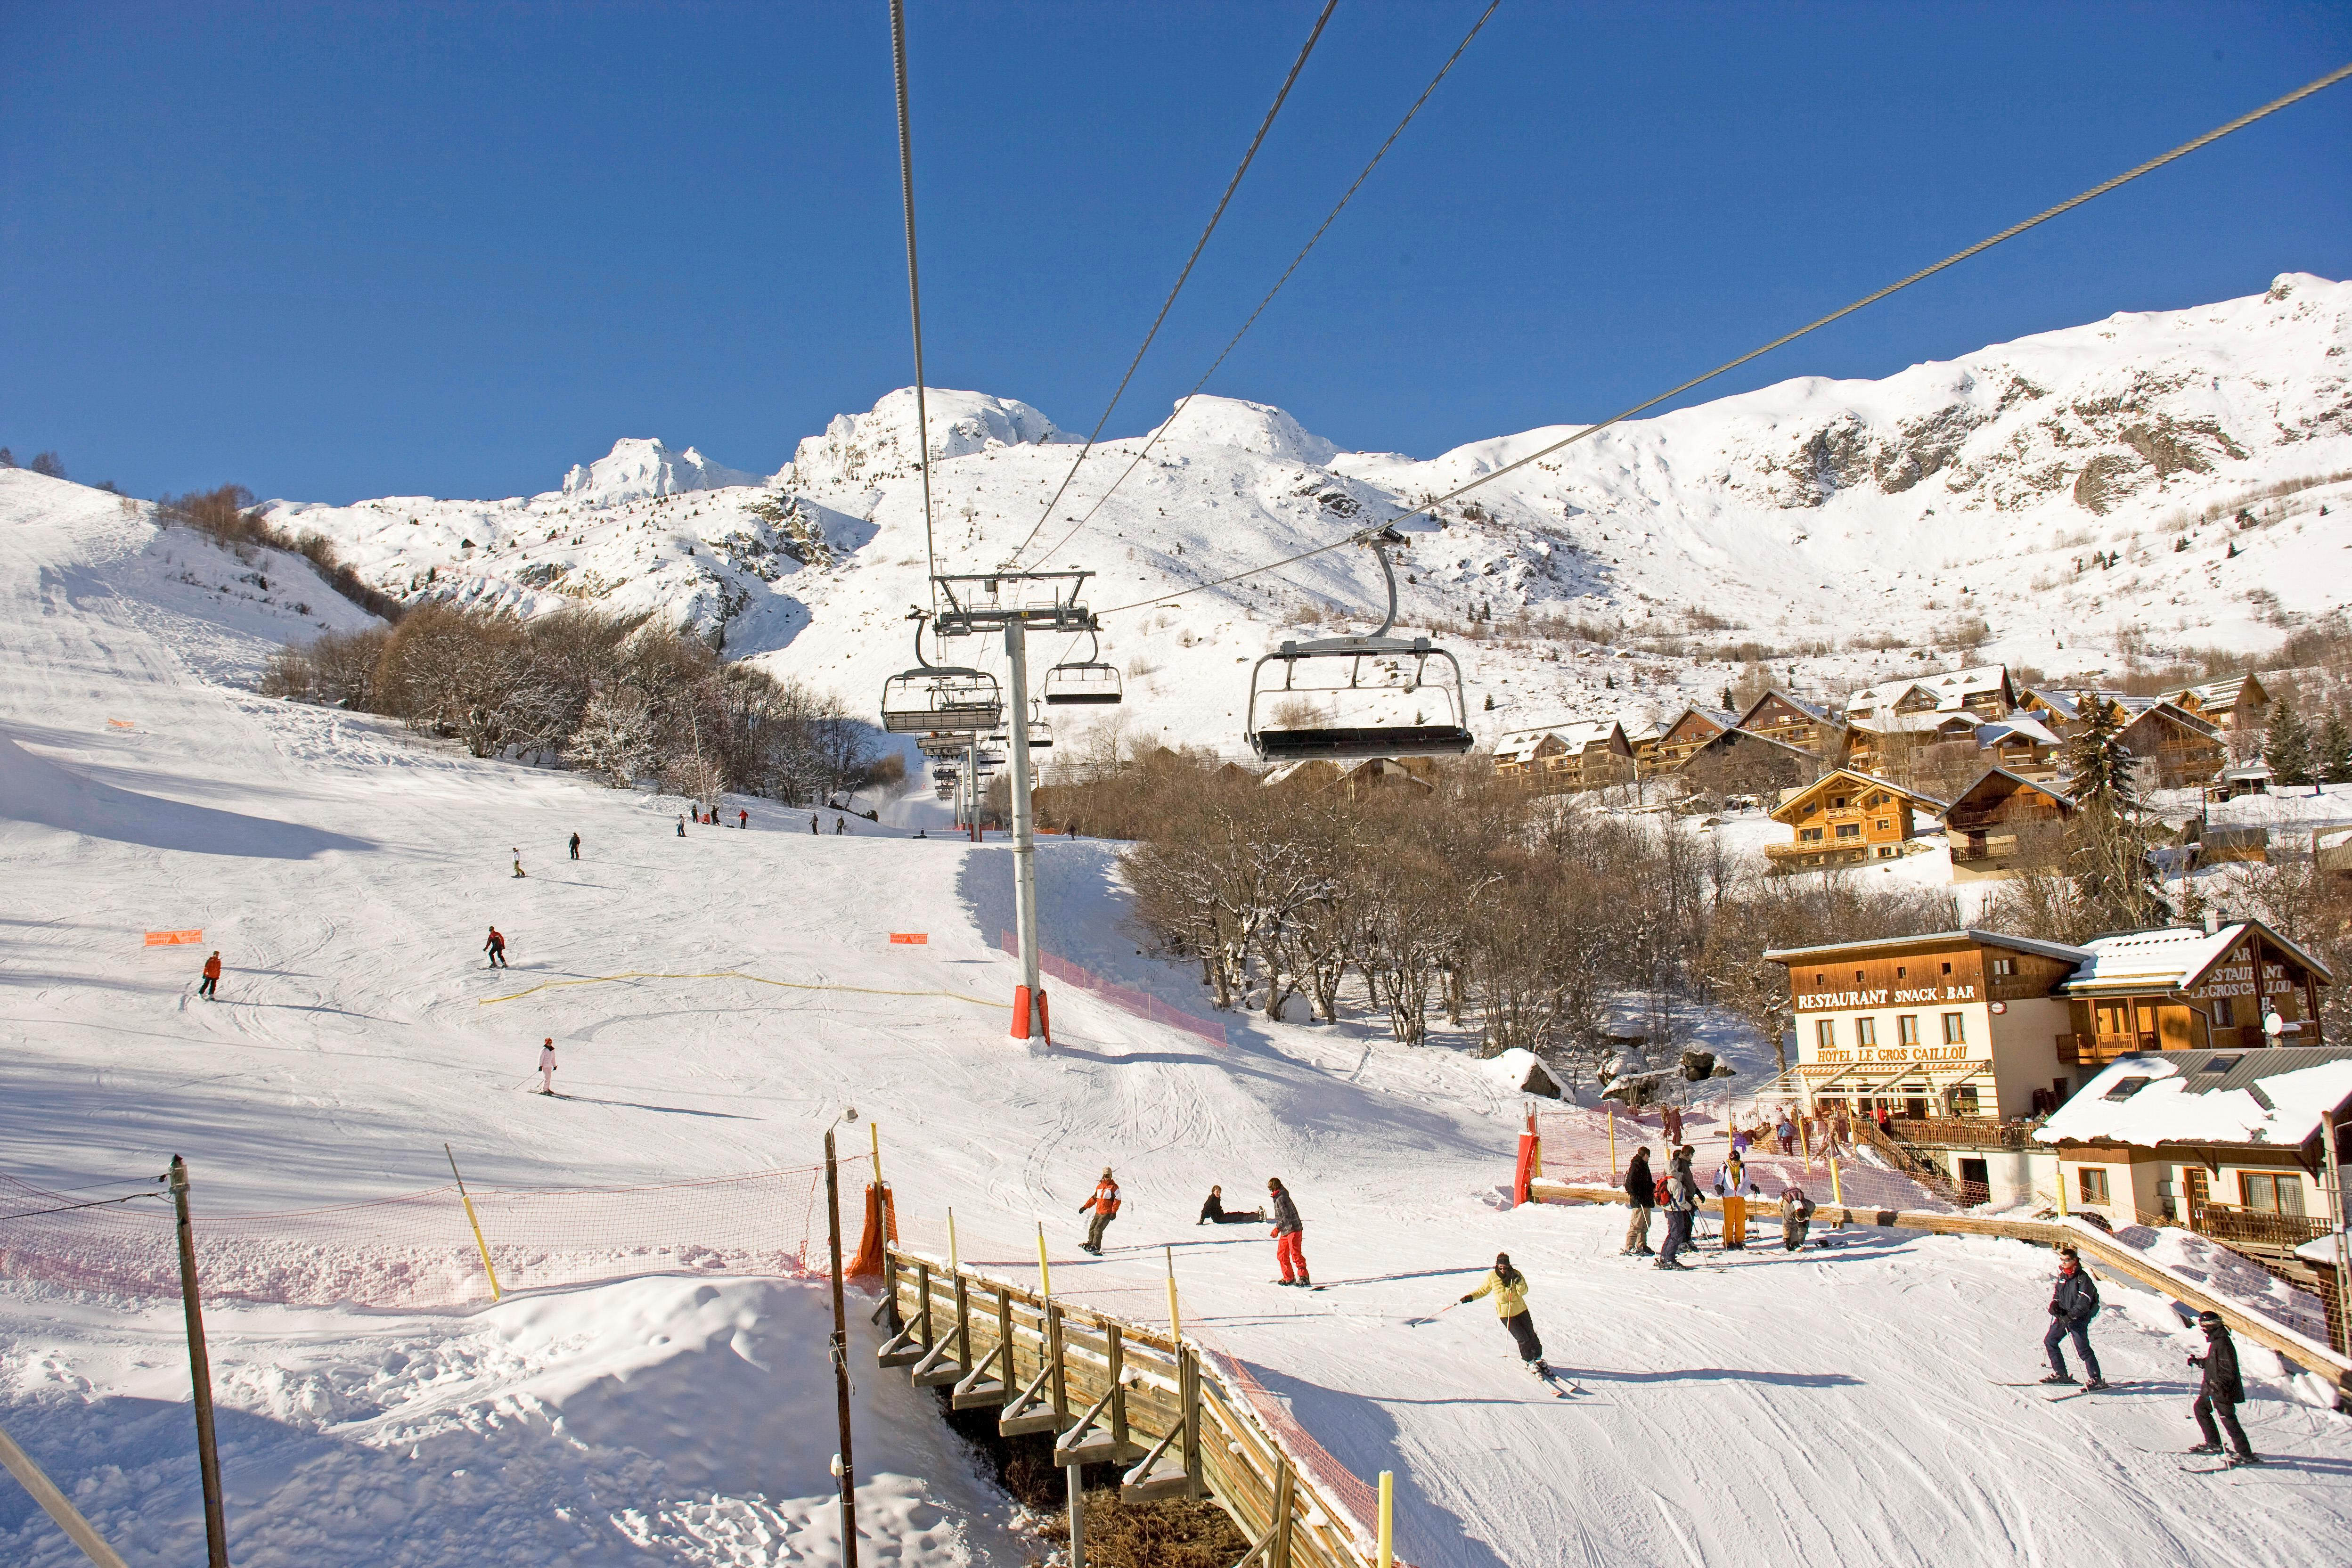 St Sorlin Ski Slopes